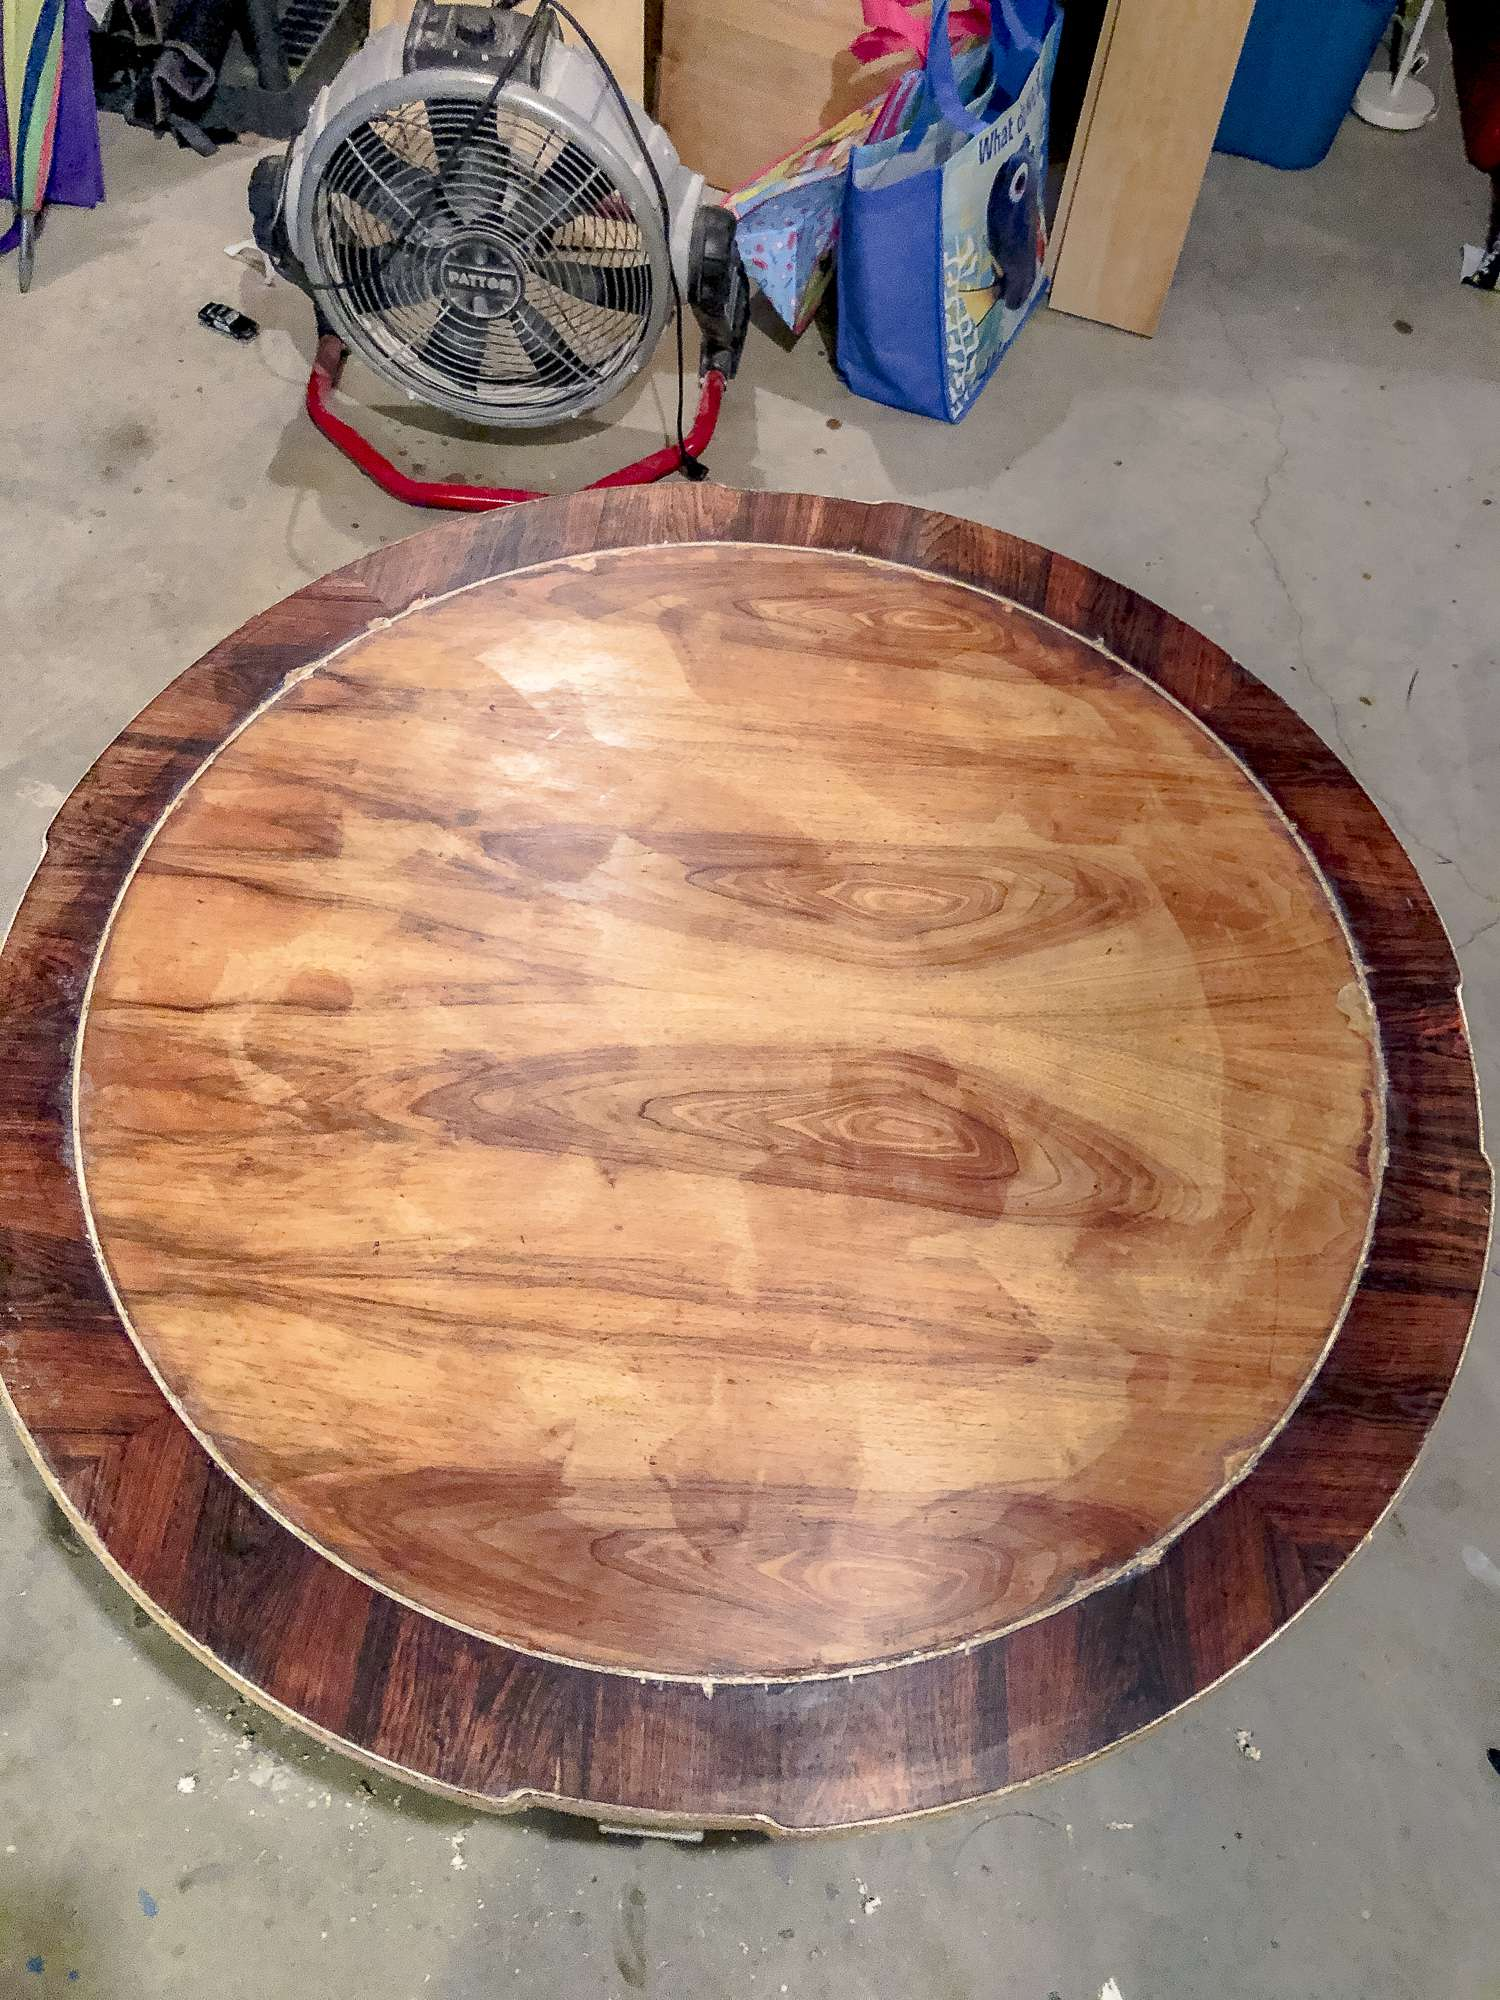 Refinishing a coffee table.